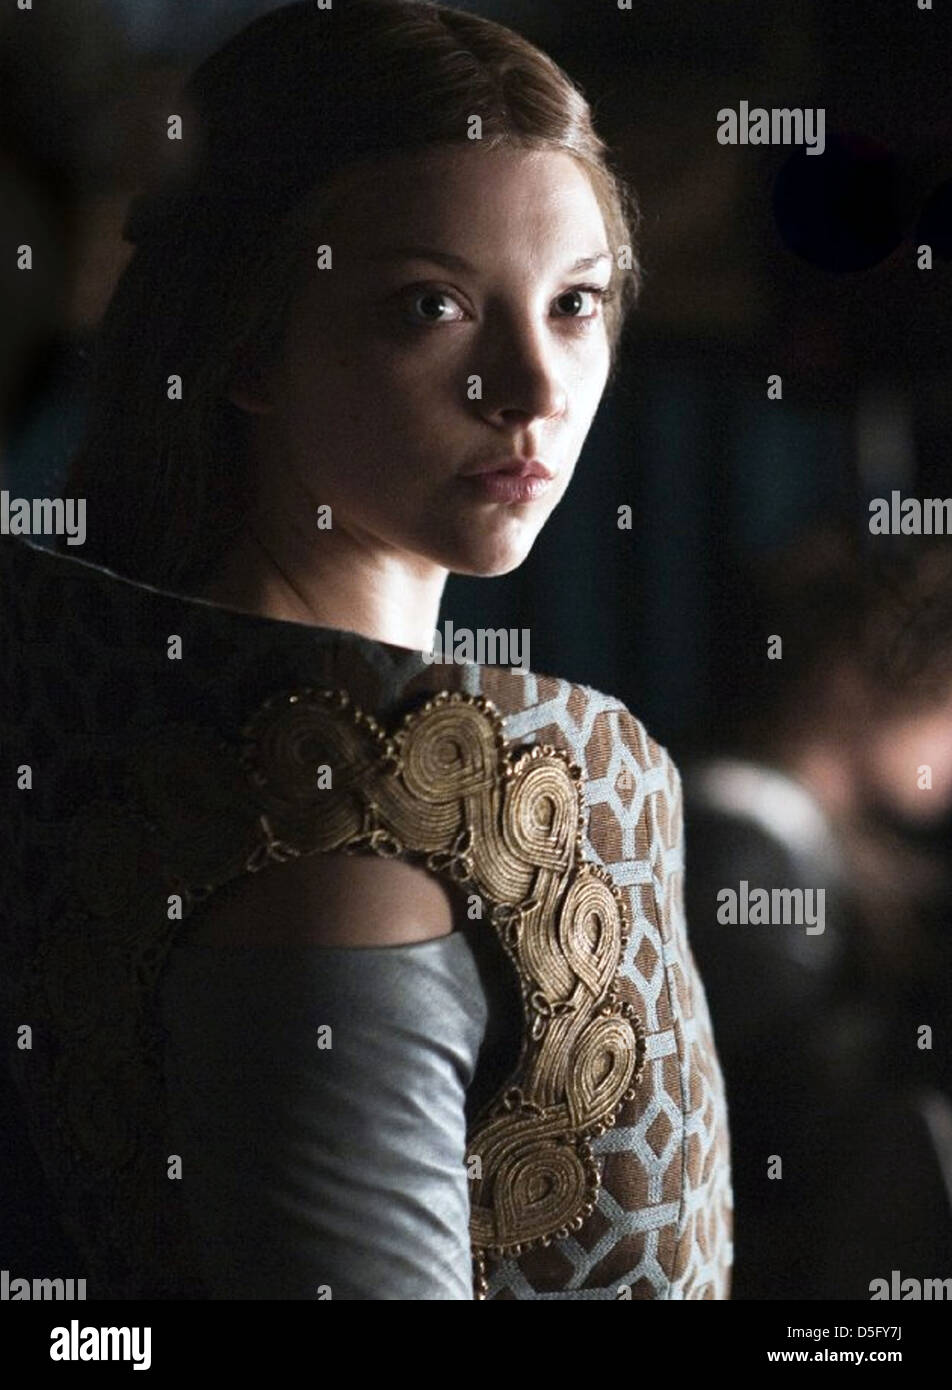 GAME OF THRONES  2011 HBO TV series with Natalie Dormer - Stock Image